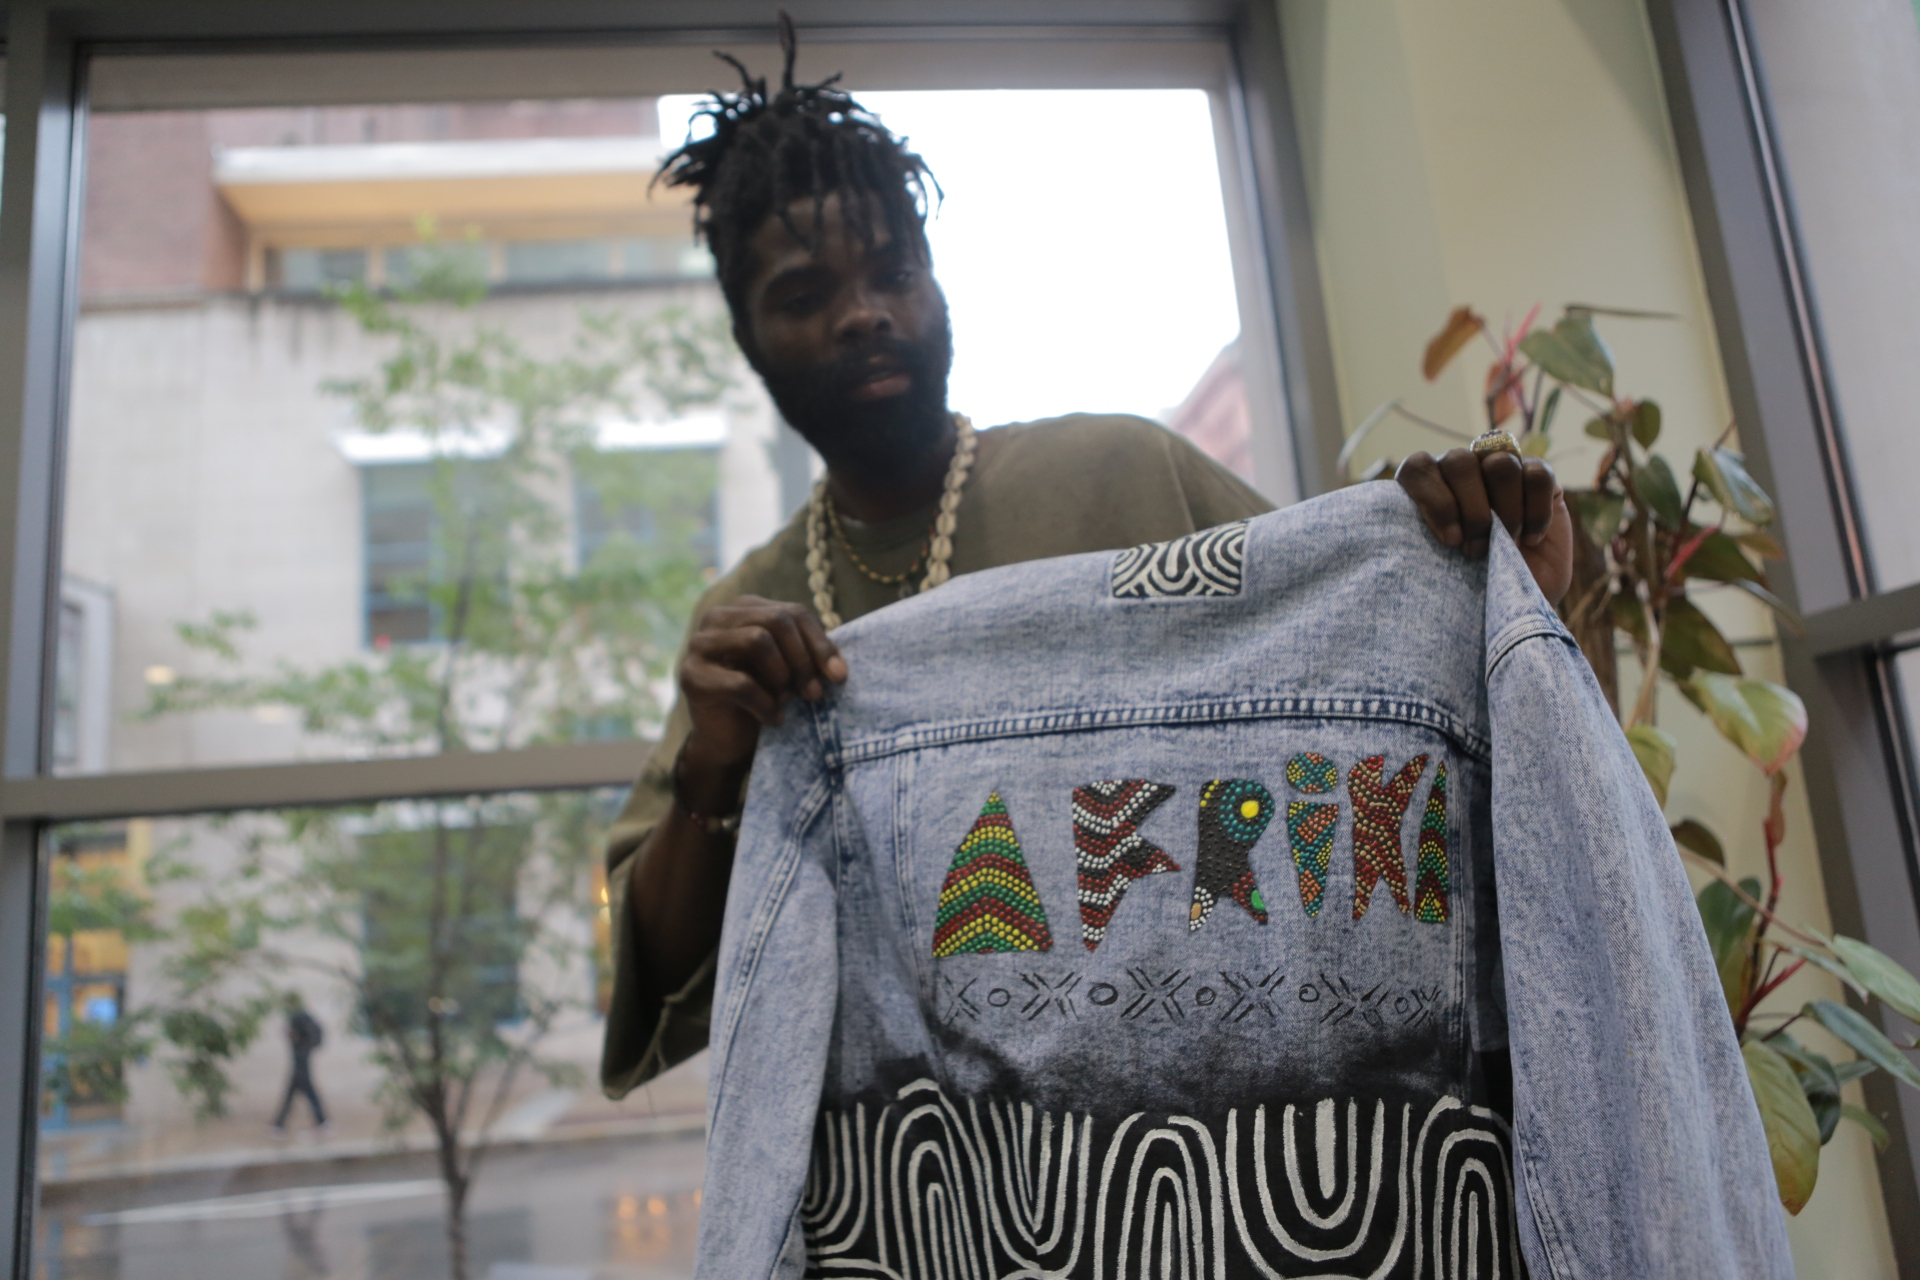 A fashion designer who specializes in Banut fashion shows off one of his designs in his shop in Baldwin, Pa.